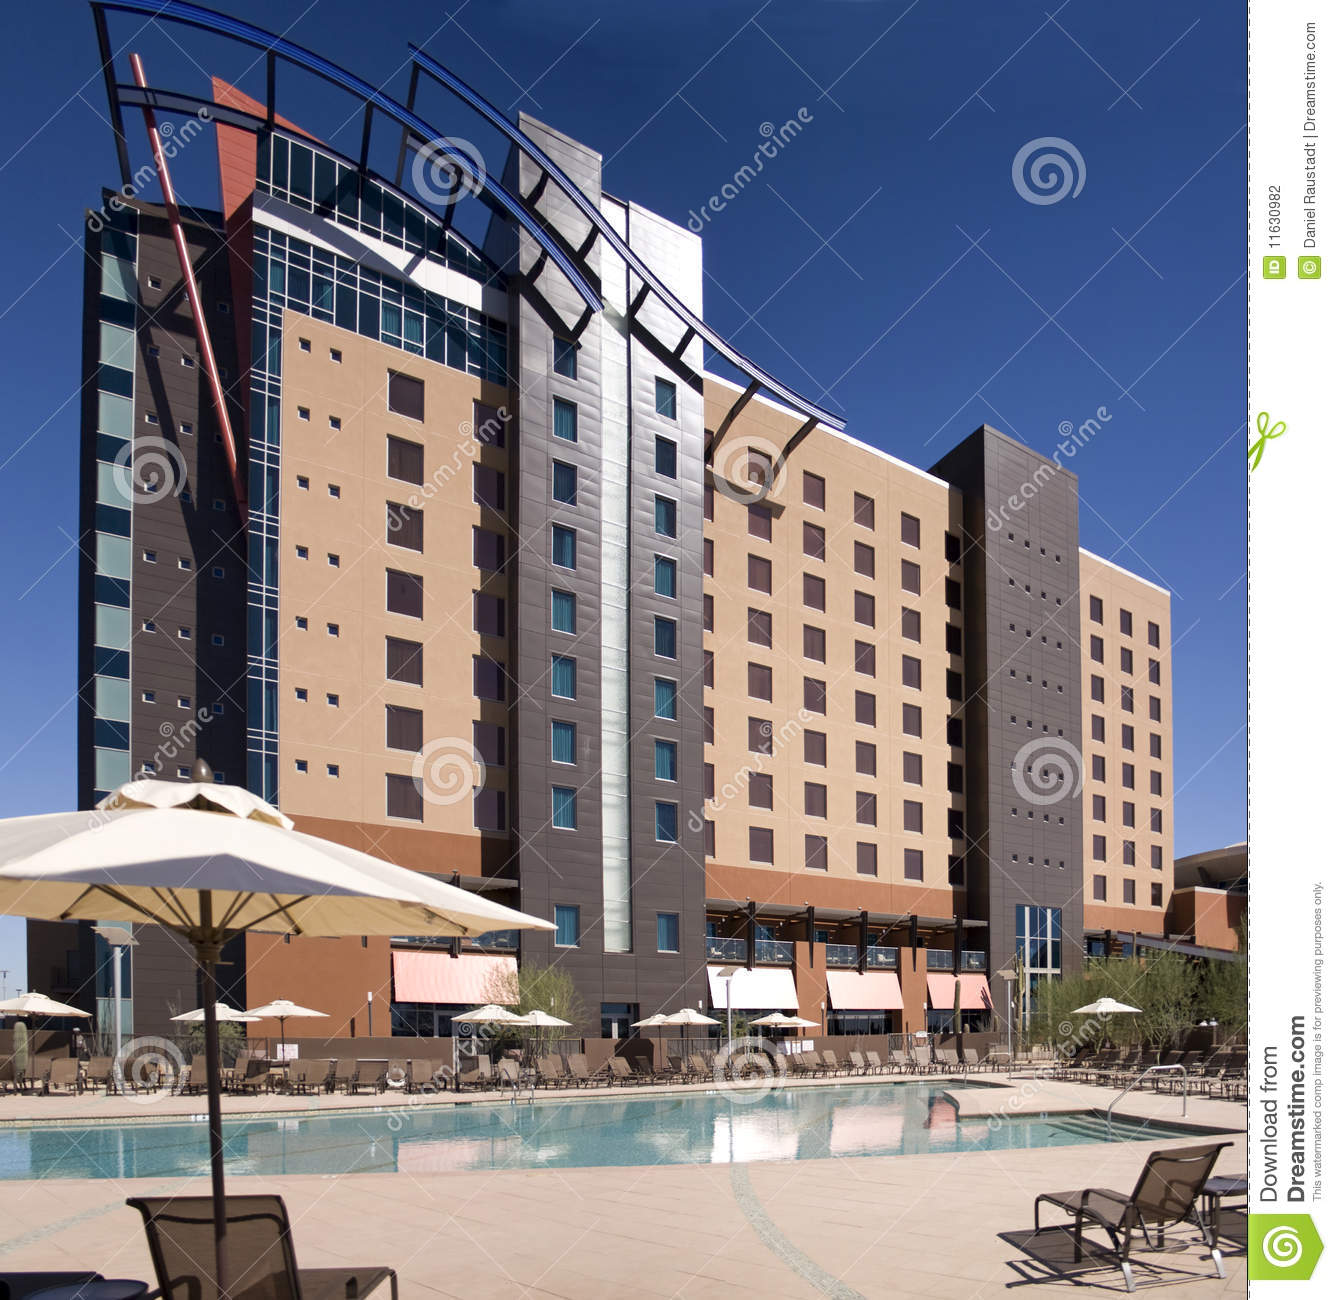 Large resort casino hotel building in phoenix stock for Hotel building design